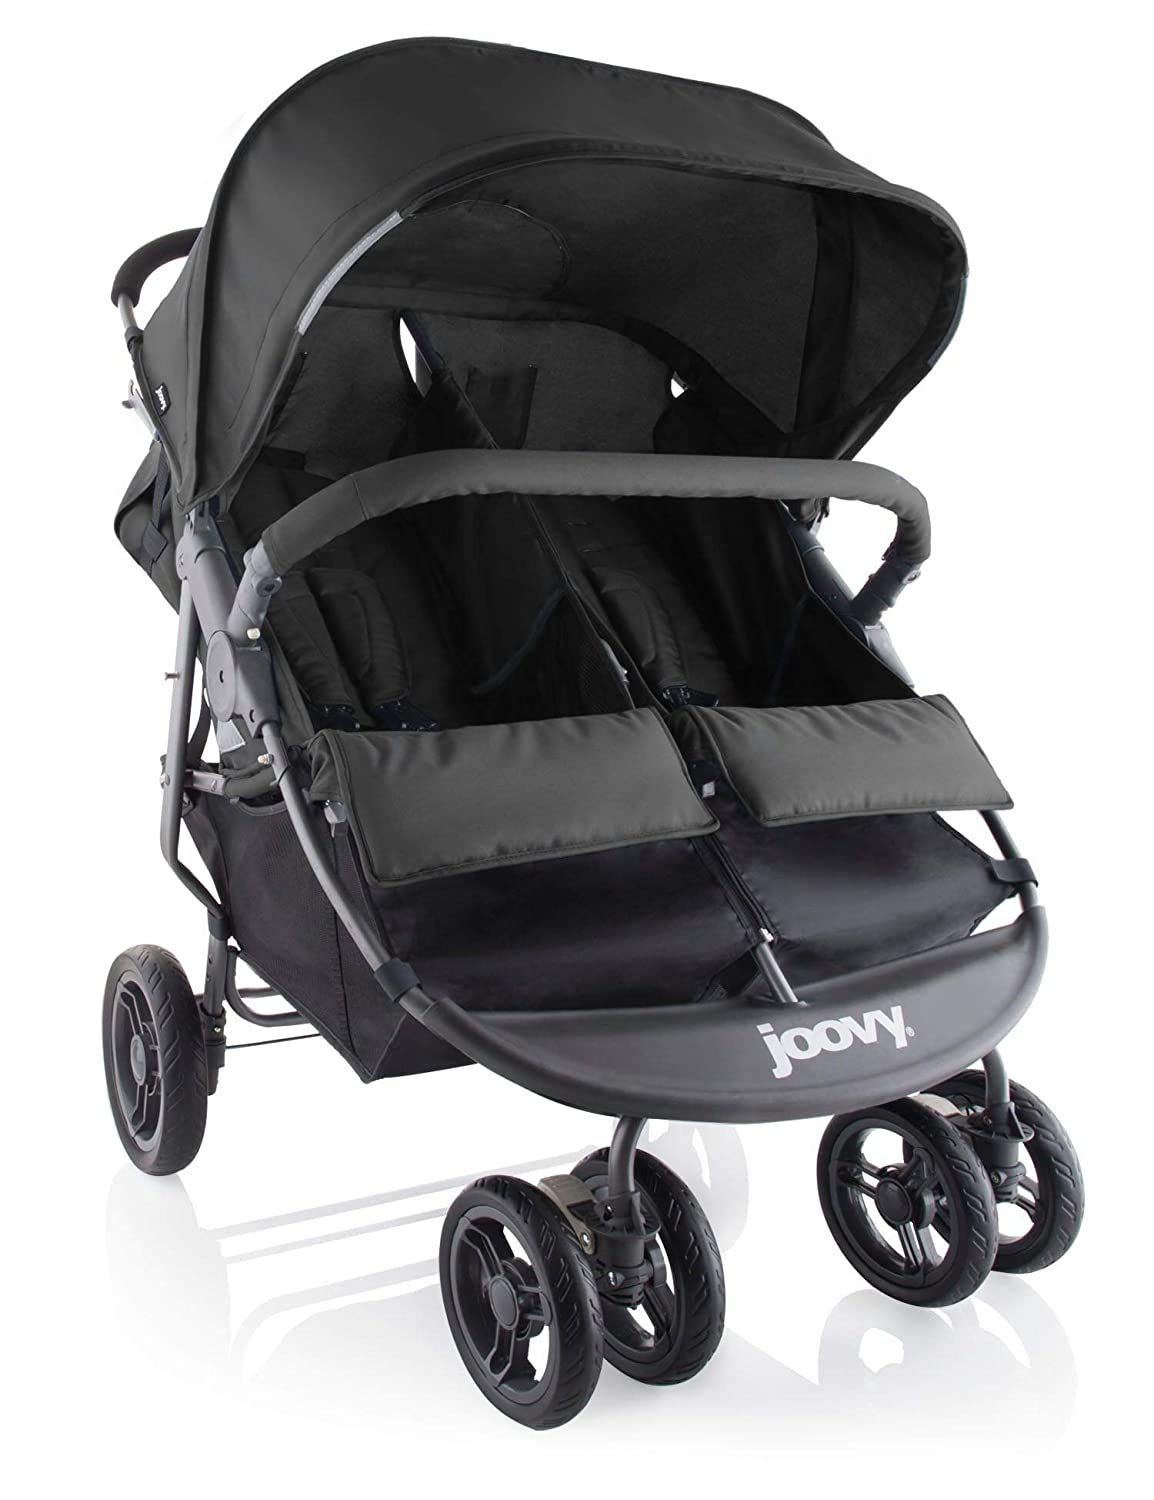 Joovy scooter X2 Double stro9ller, stroller for twins Best Double Stroller Review